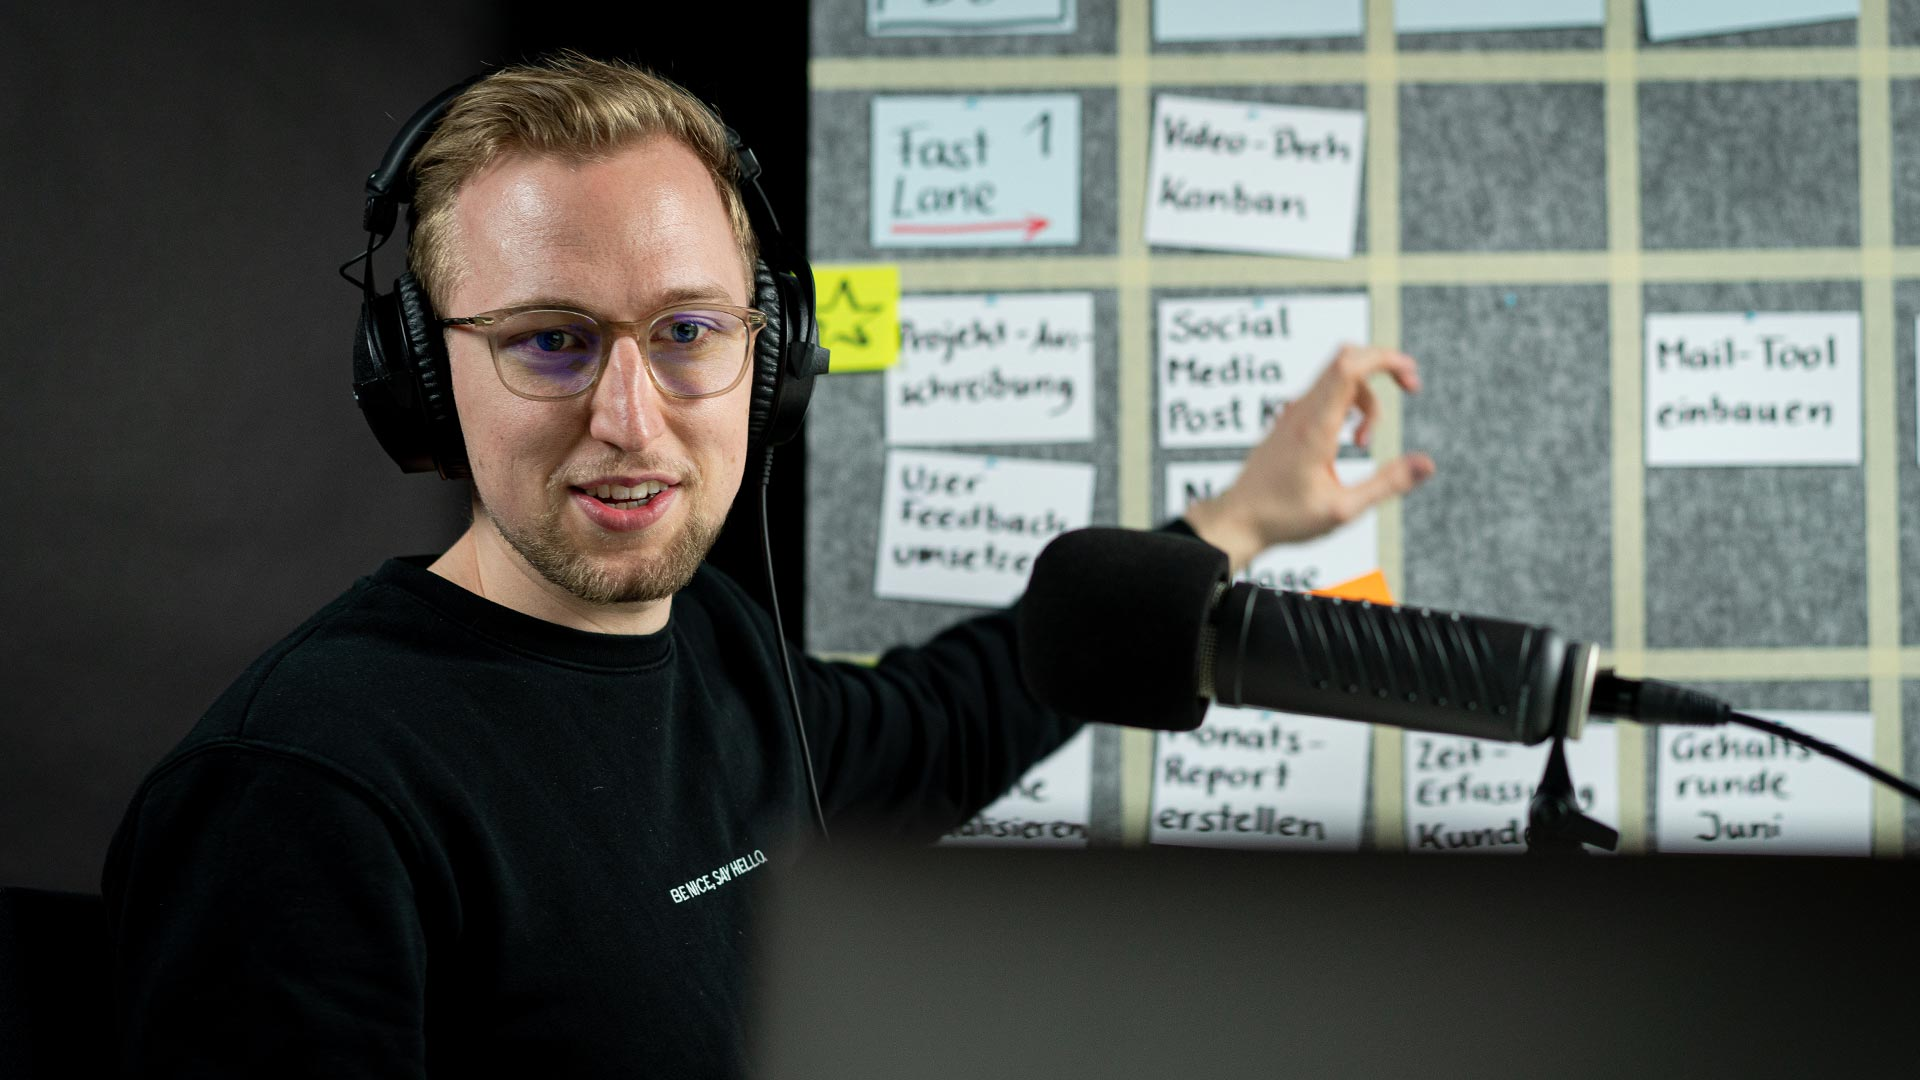 Man explaining scrum infront of microphone